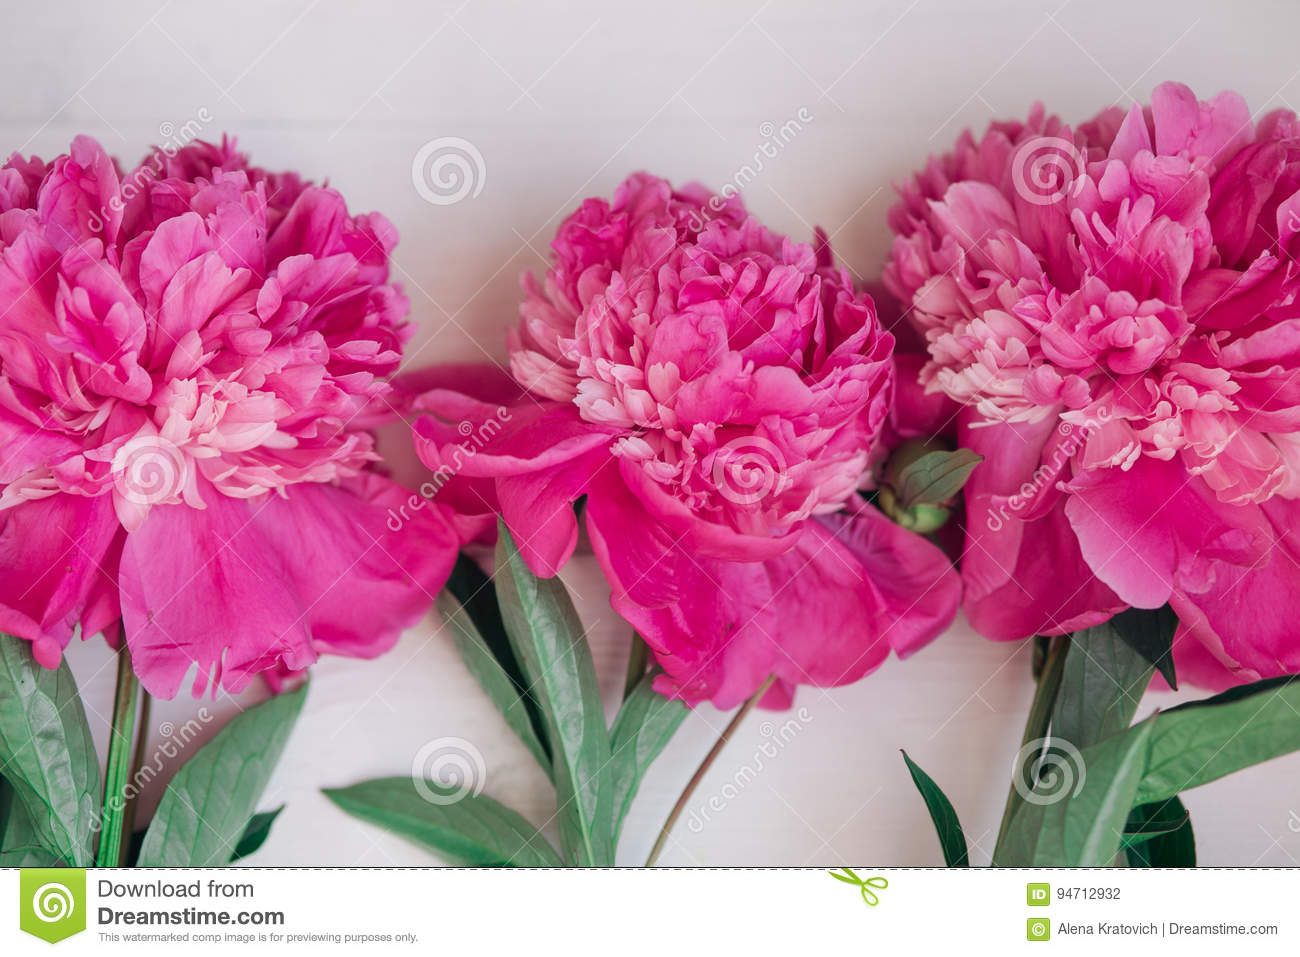 Download Floral Frame With Pink Peonies On Wooden Background Mothers Day Or Womens